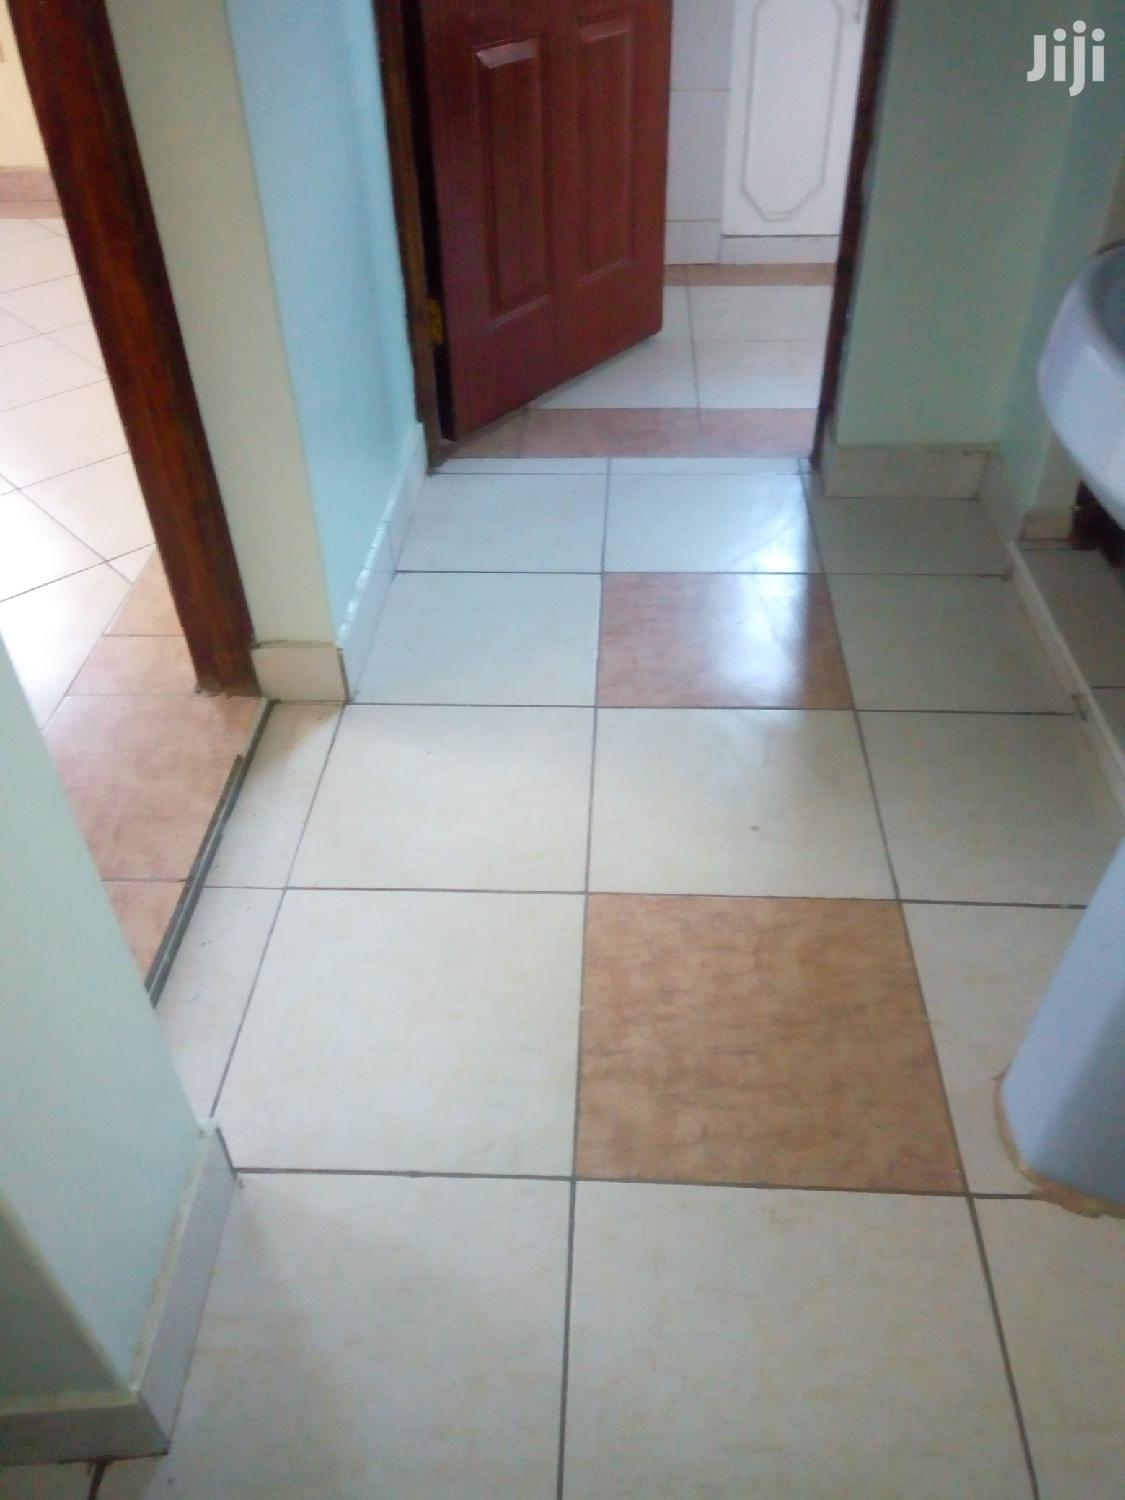 Modern Two Bedroom to Let in South C | Houses & Apartments For Rent for sale in Nairobi West, Nairobi, Kenya